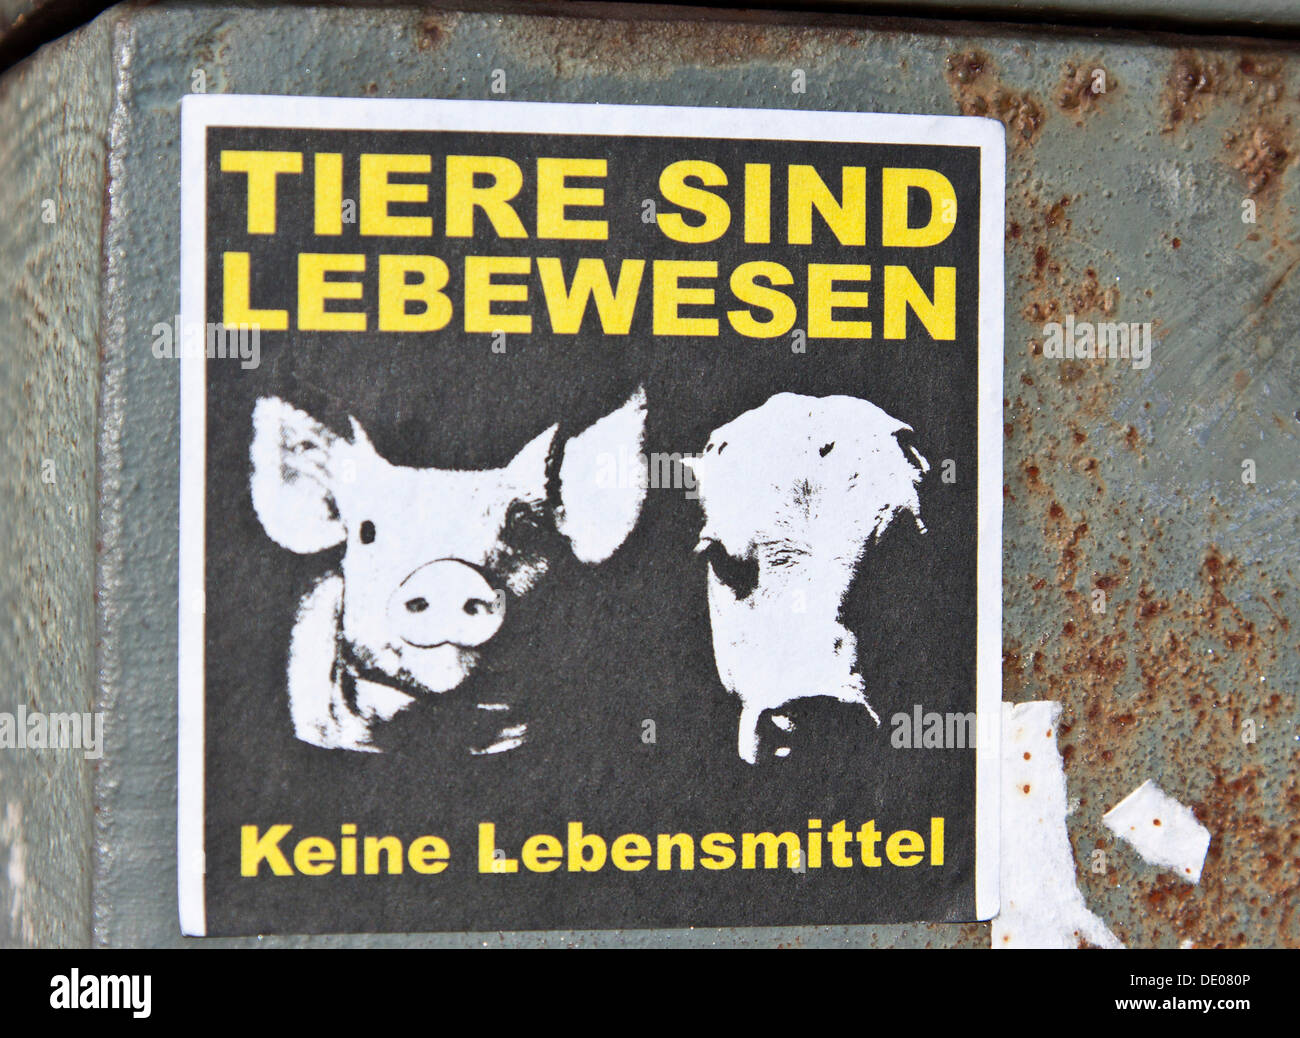 Sticker 'Tiere sind Lebewesen - Keine Lebensmittel', German for 'animals are living beings not food', Berlin - Stock Image